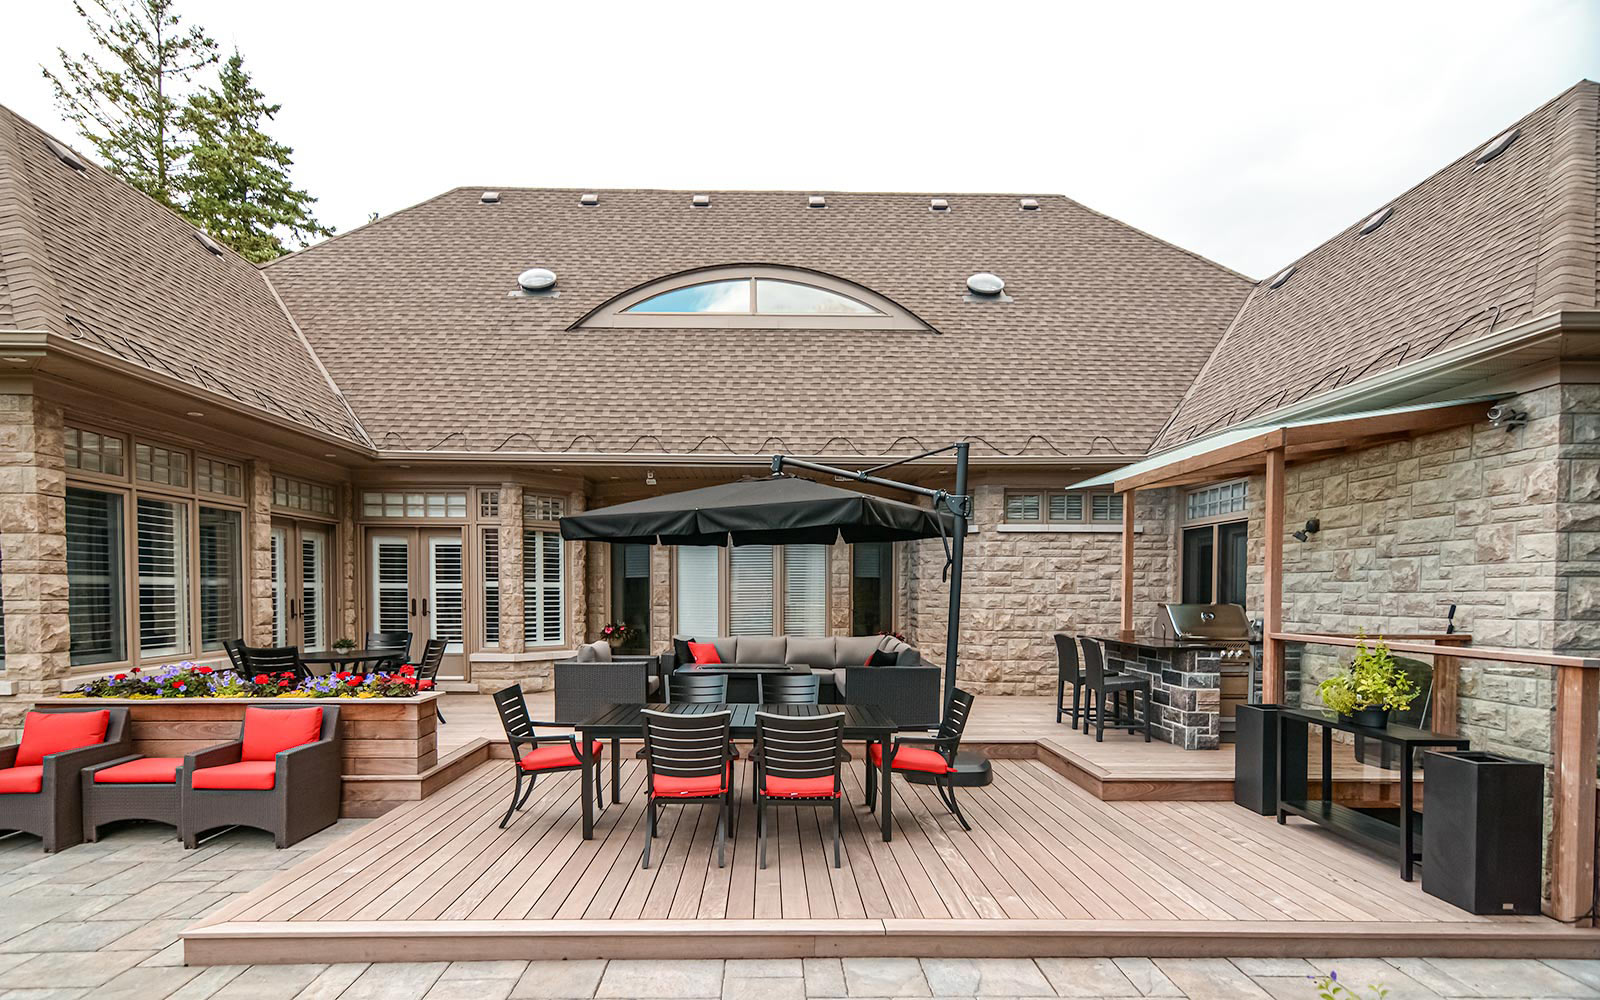 Toronto Landscaping Company Decking & Interlocking Project; Featuring IPE Decking, IPE Privacy Fence, Woodworking Pergola.